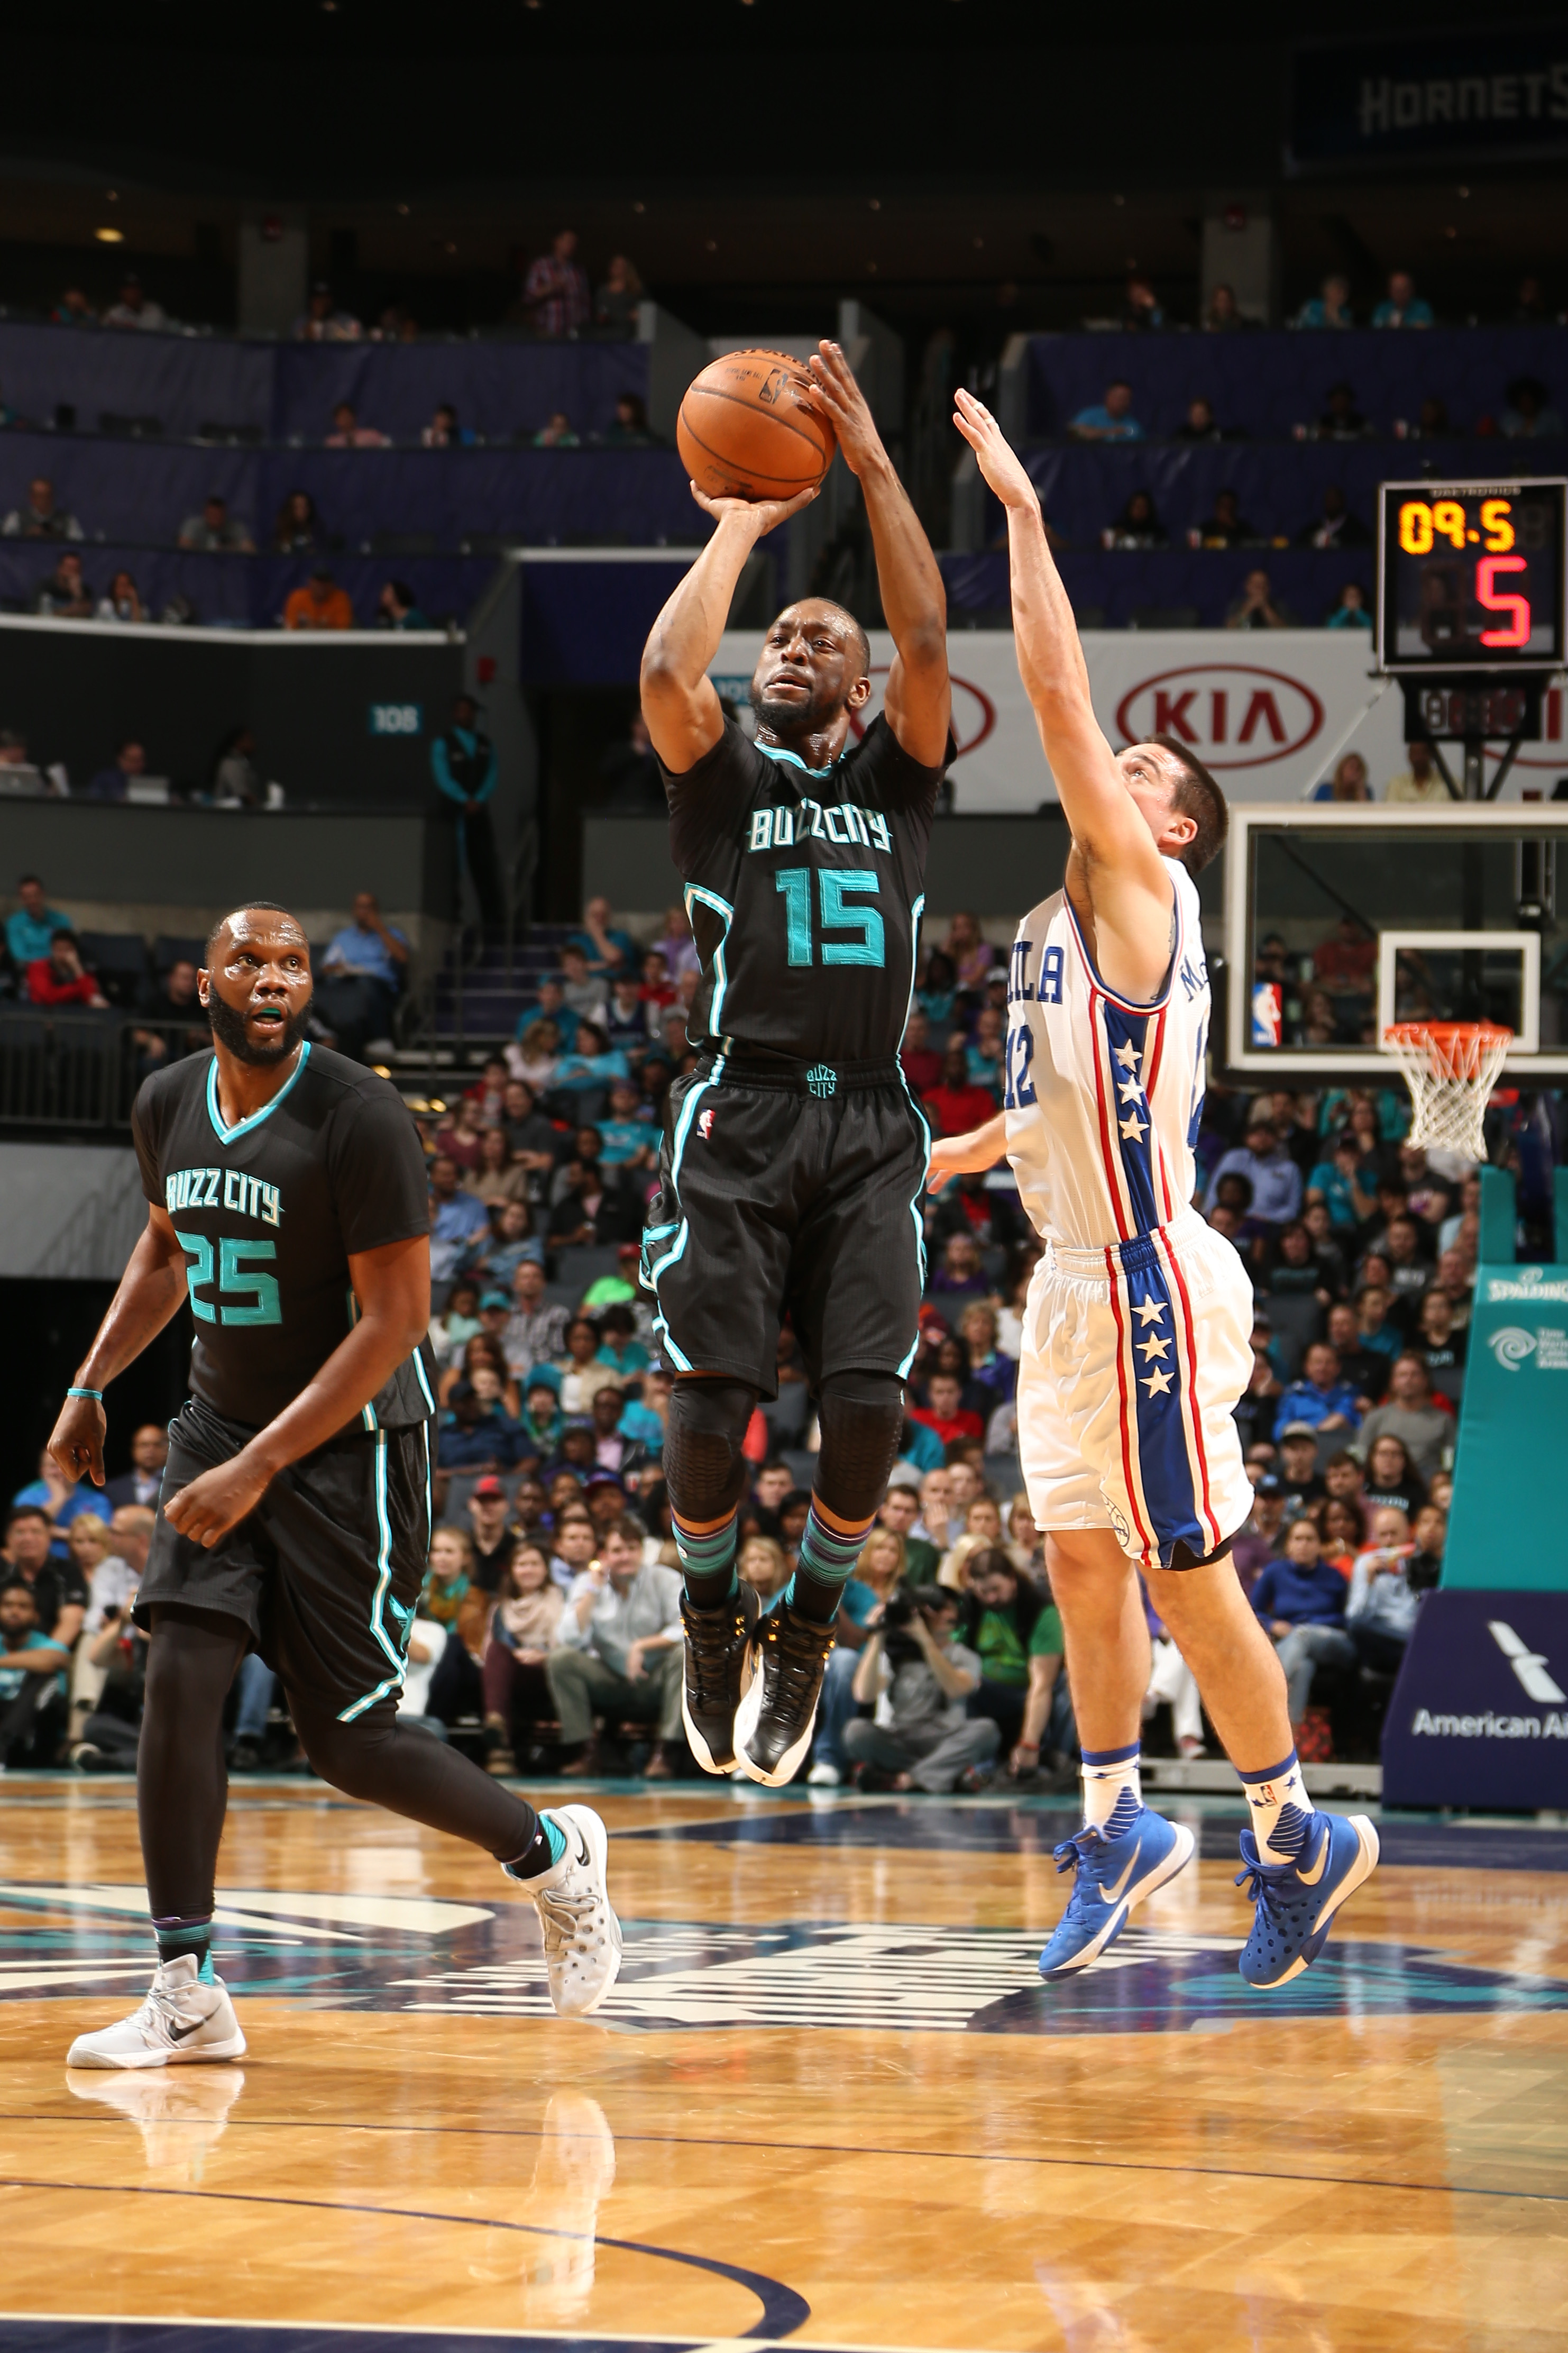 CHARLOTTE, NC  - APRIL 1: Kemba Walker #15 of the Charlotte Hornets shoots against the Philadelphia 76ers during the game on April 1, 2016 at Time Warner Cable Arena in Charlotte, North Carolina. (Photo by Kent Smith/NBAE via Getty Images)